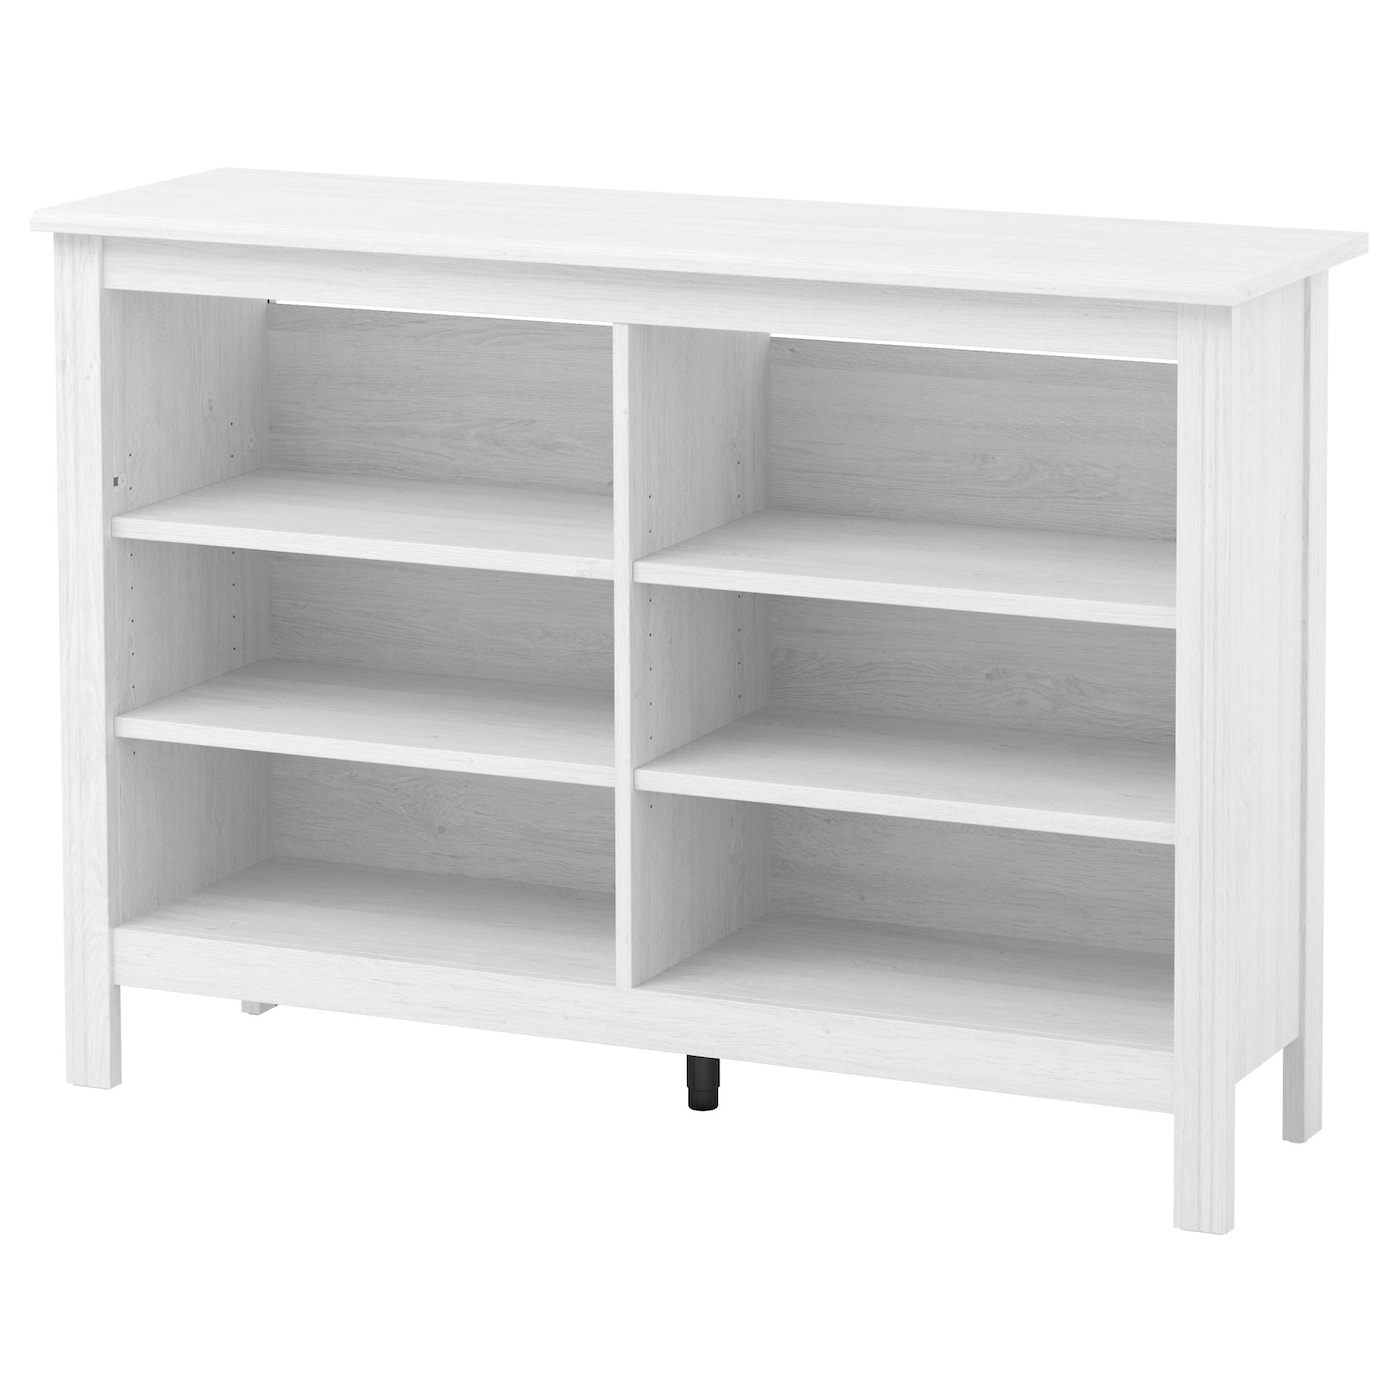 brusali tv bench white 120x85 cm ikea. Black Bedroom Furniture Sets. Home Design Ideas